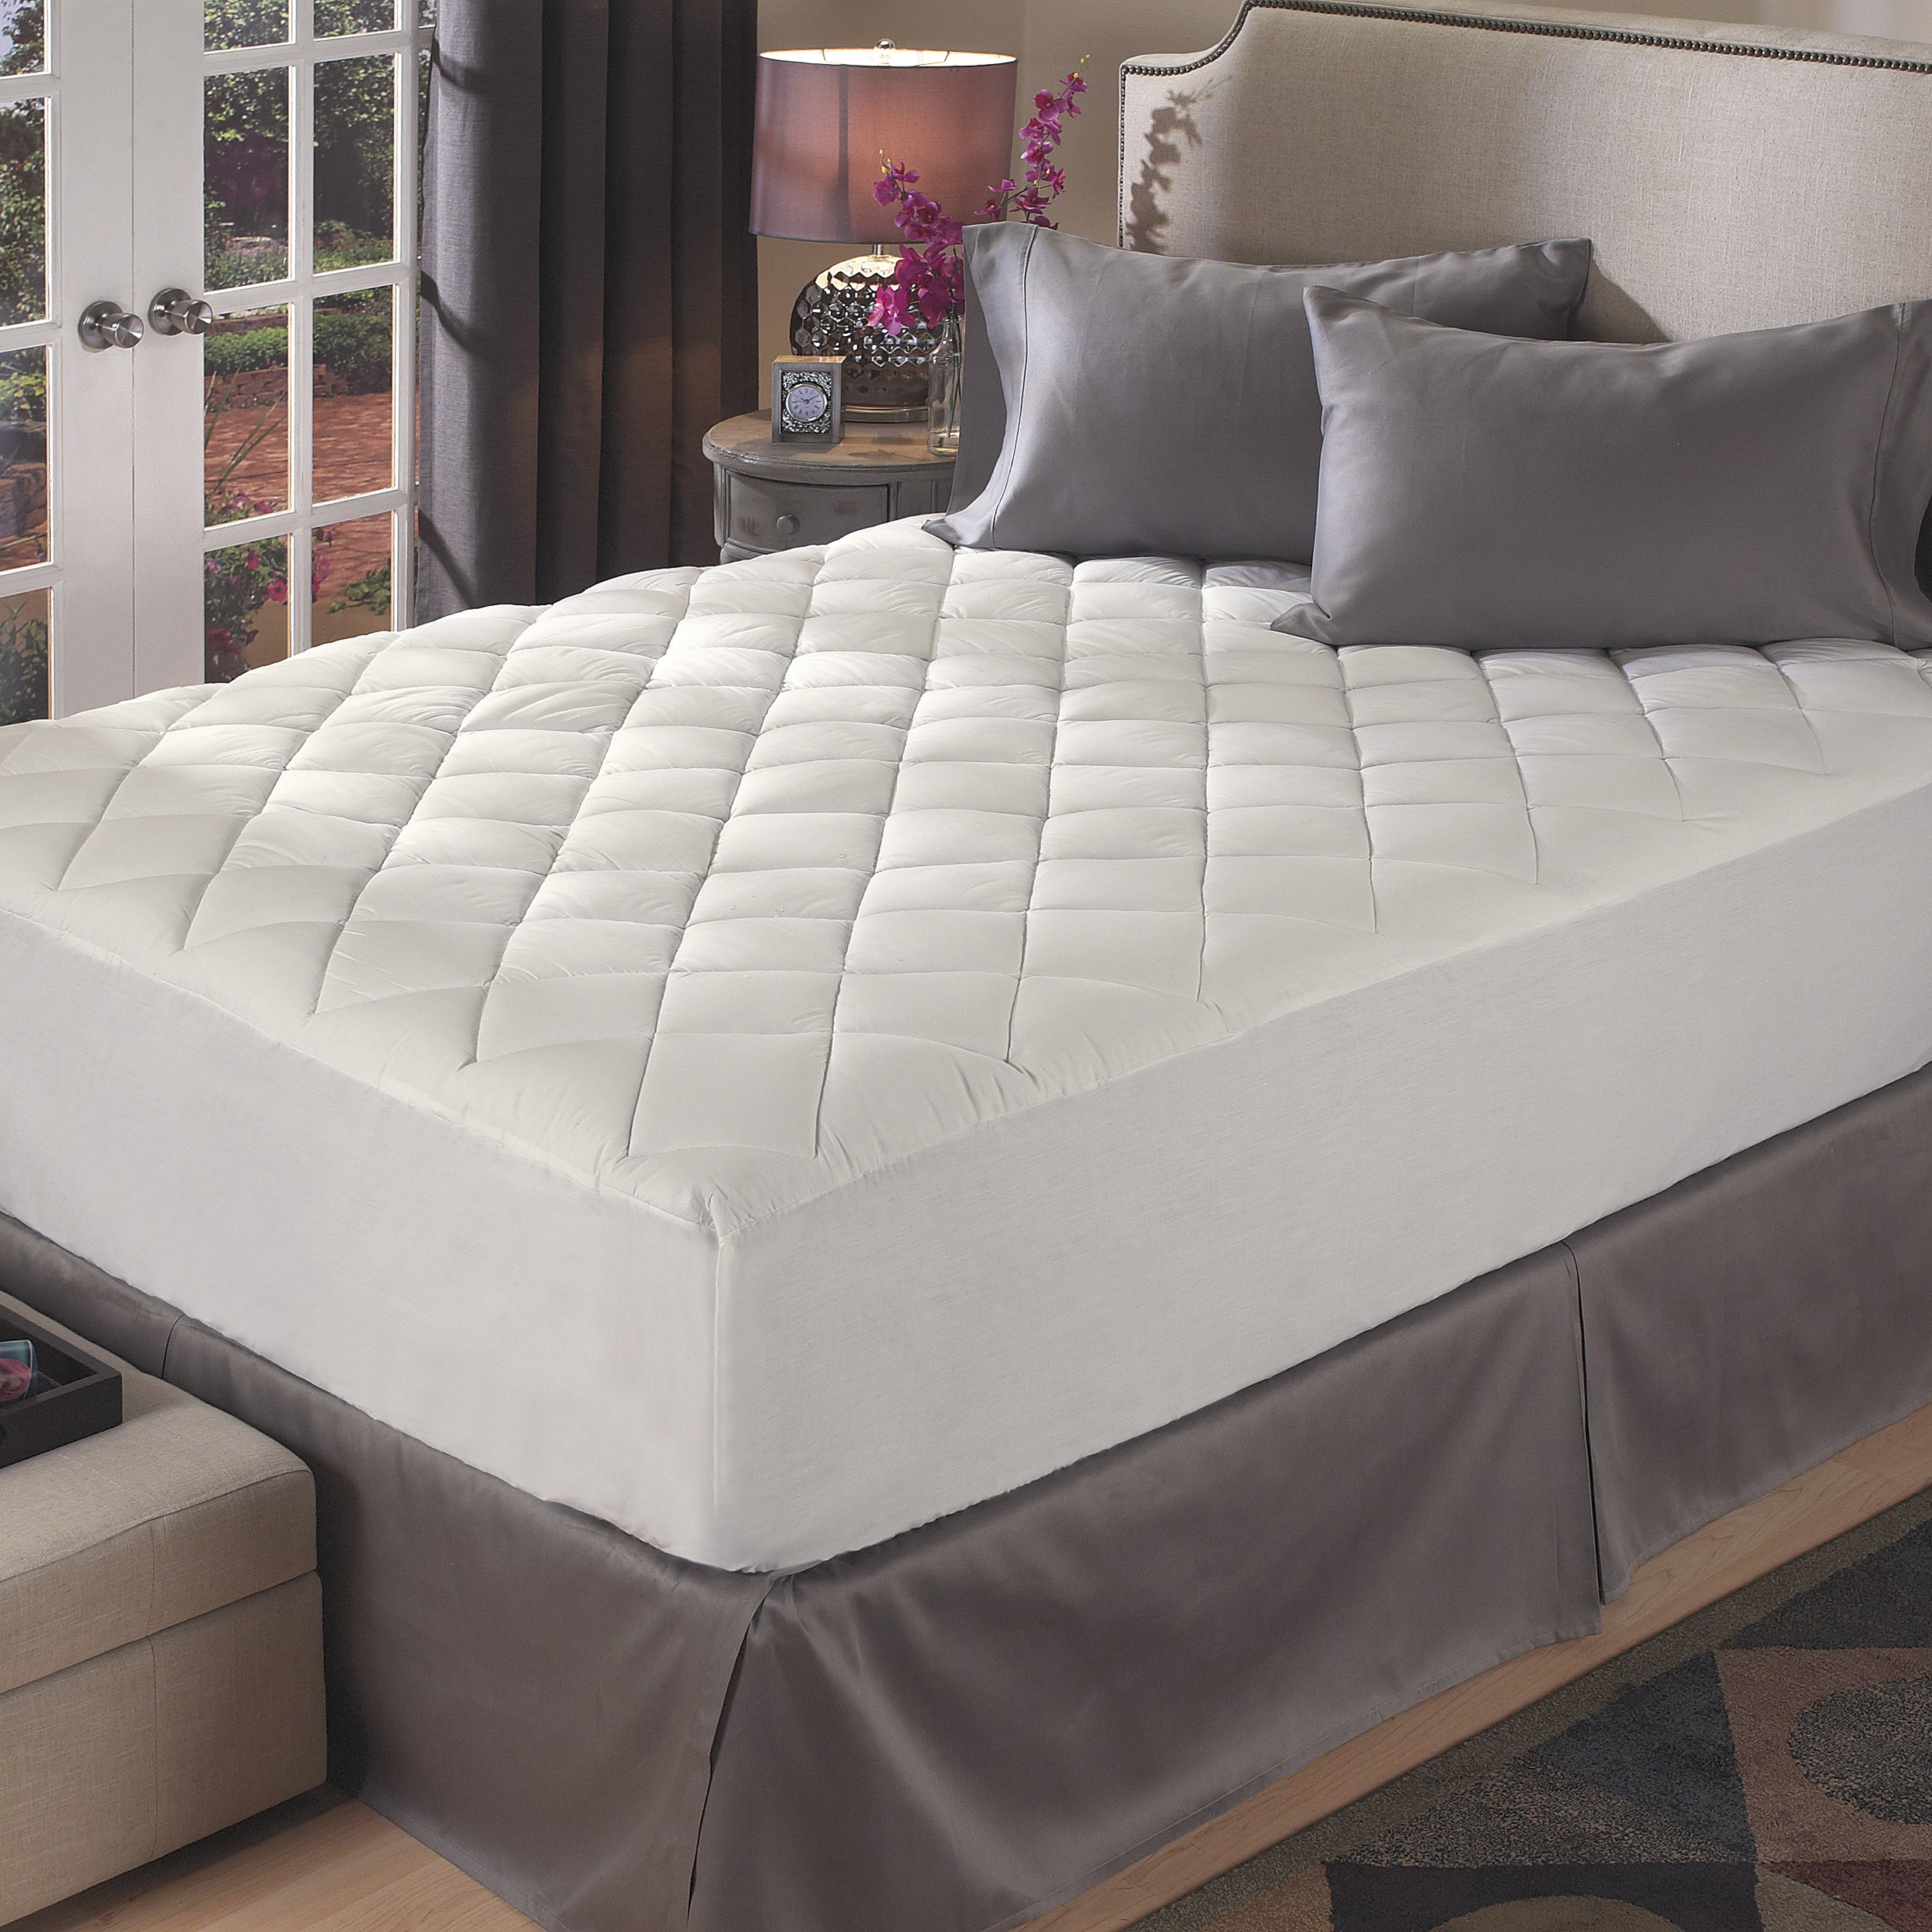 Hotel super topper plush comfort mattress pad free for Comfort inn mattress brand